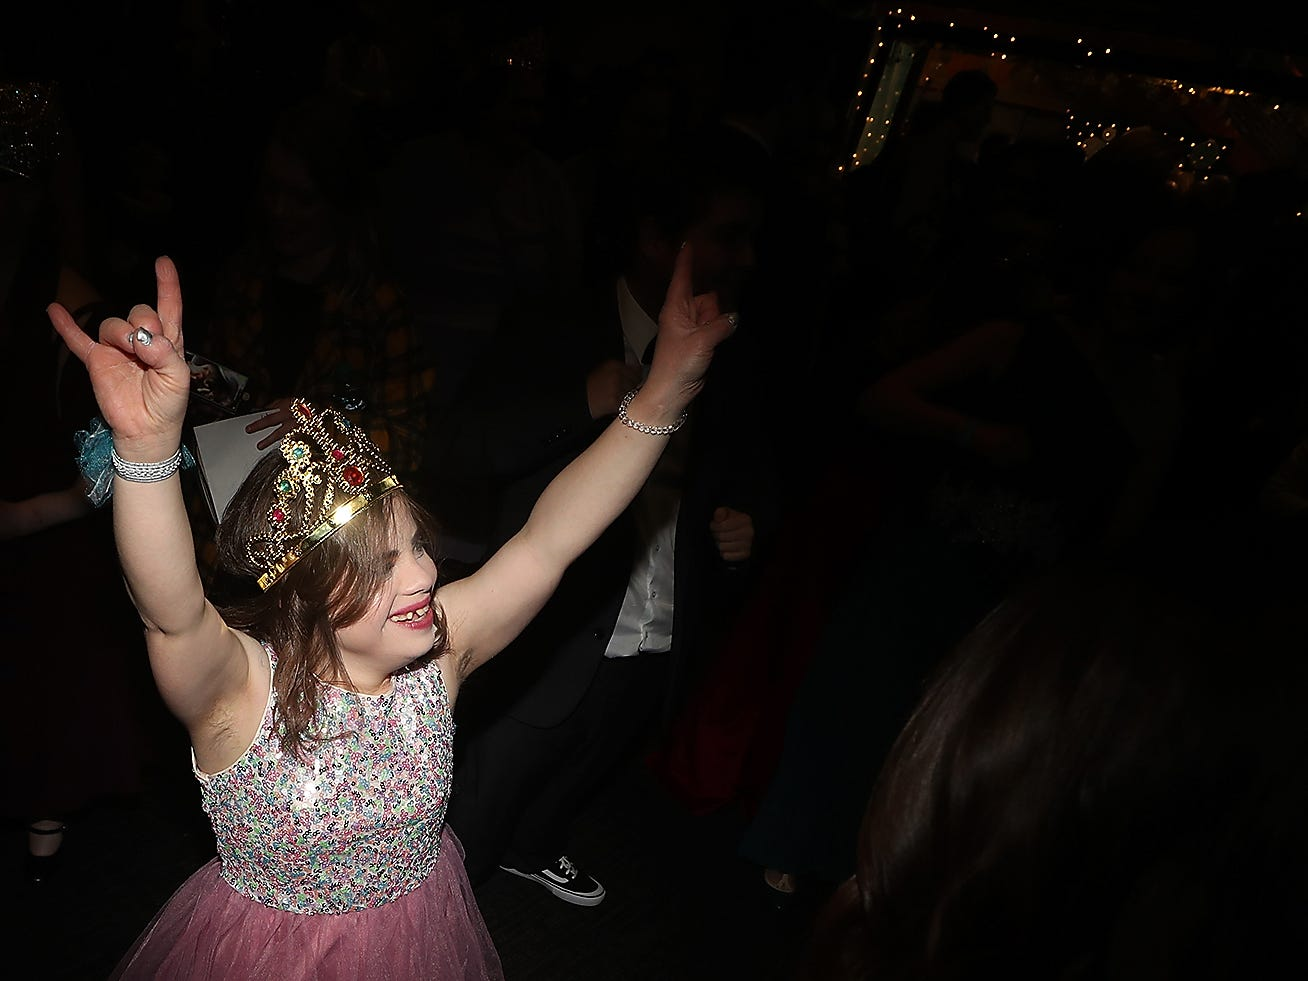 Hannah LaCelle throws her arms in the air as she dances the night away during the Night To Shine at the newlife Training & Events Center in Silverdale on Friday, March 8, 2019.